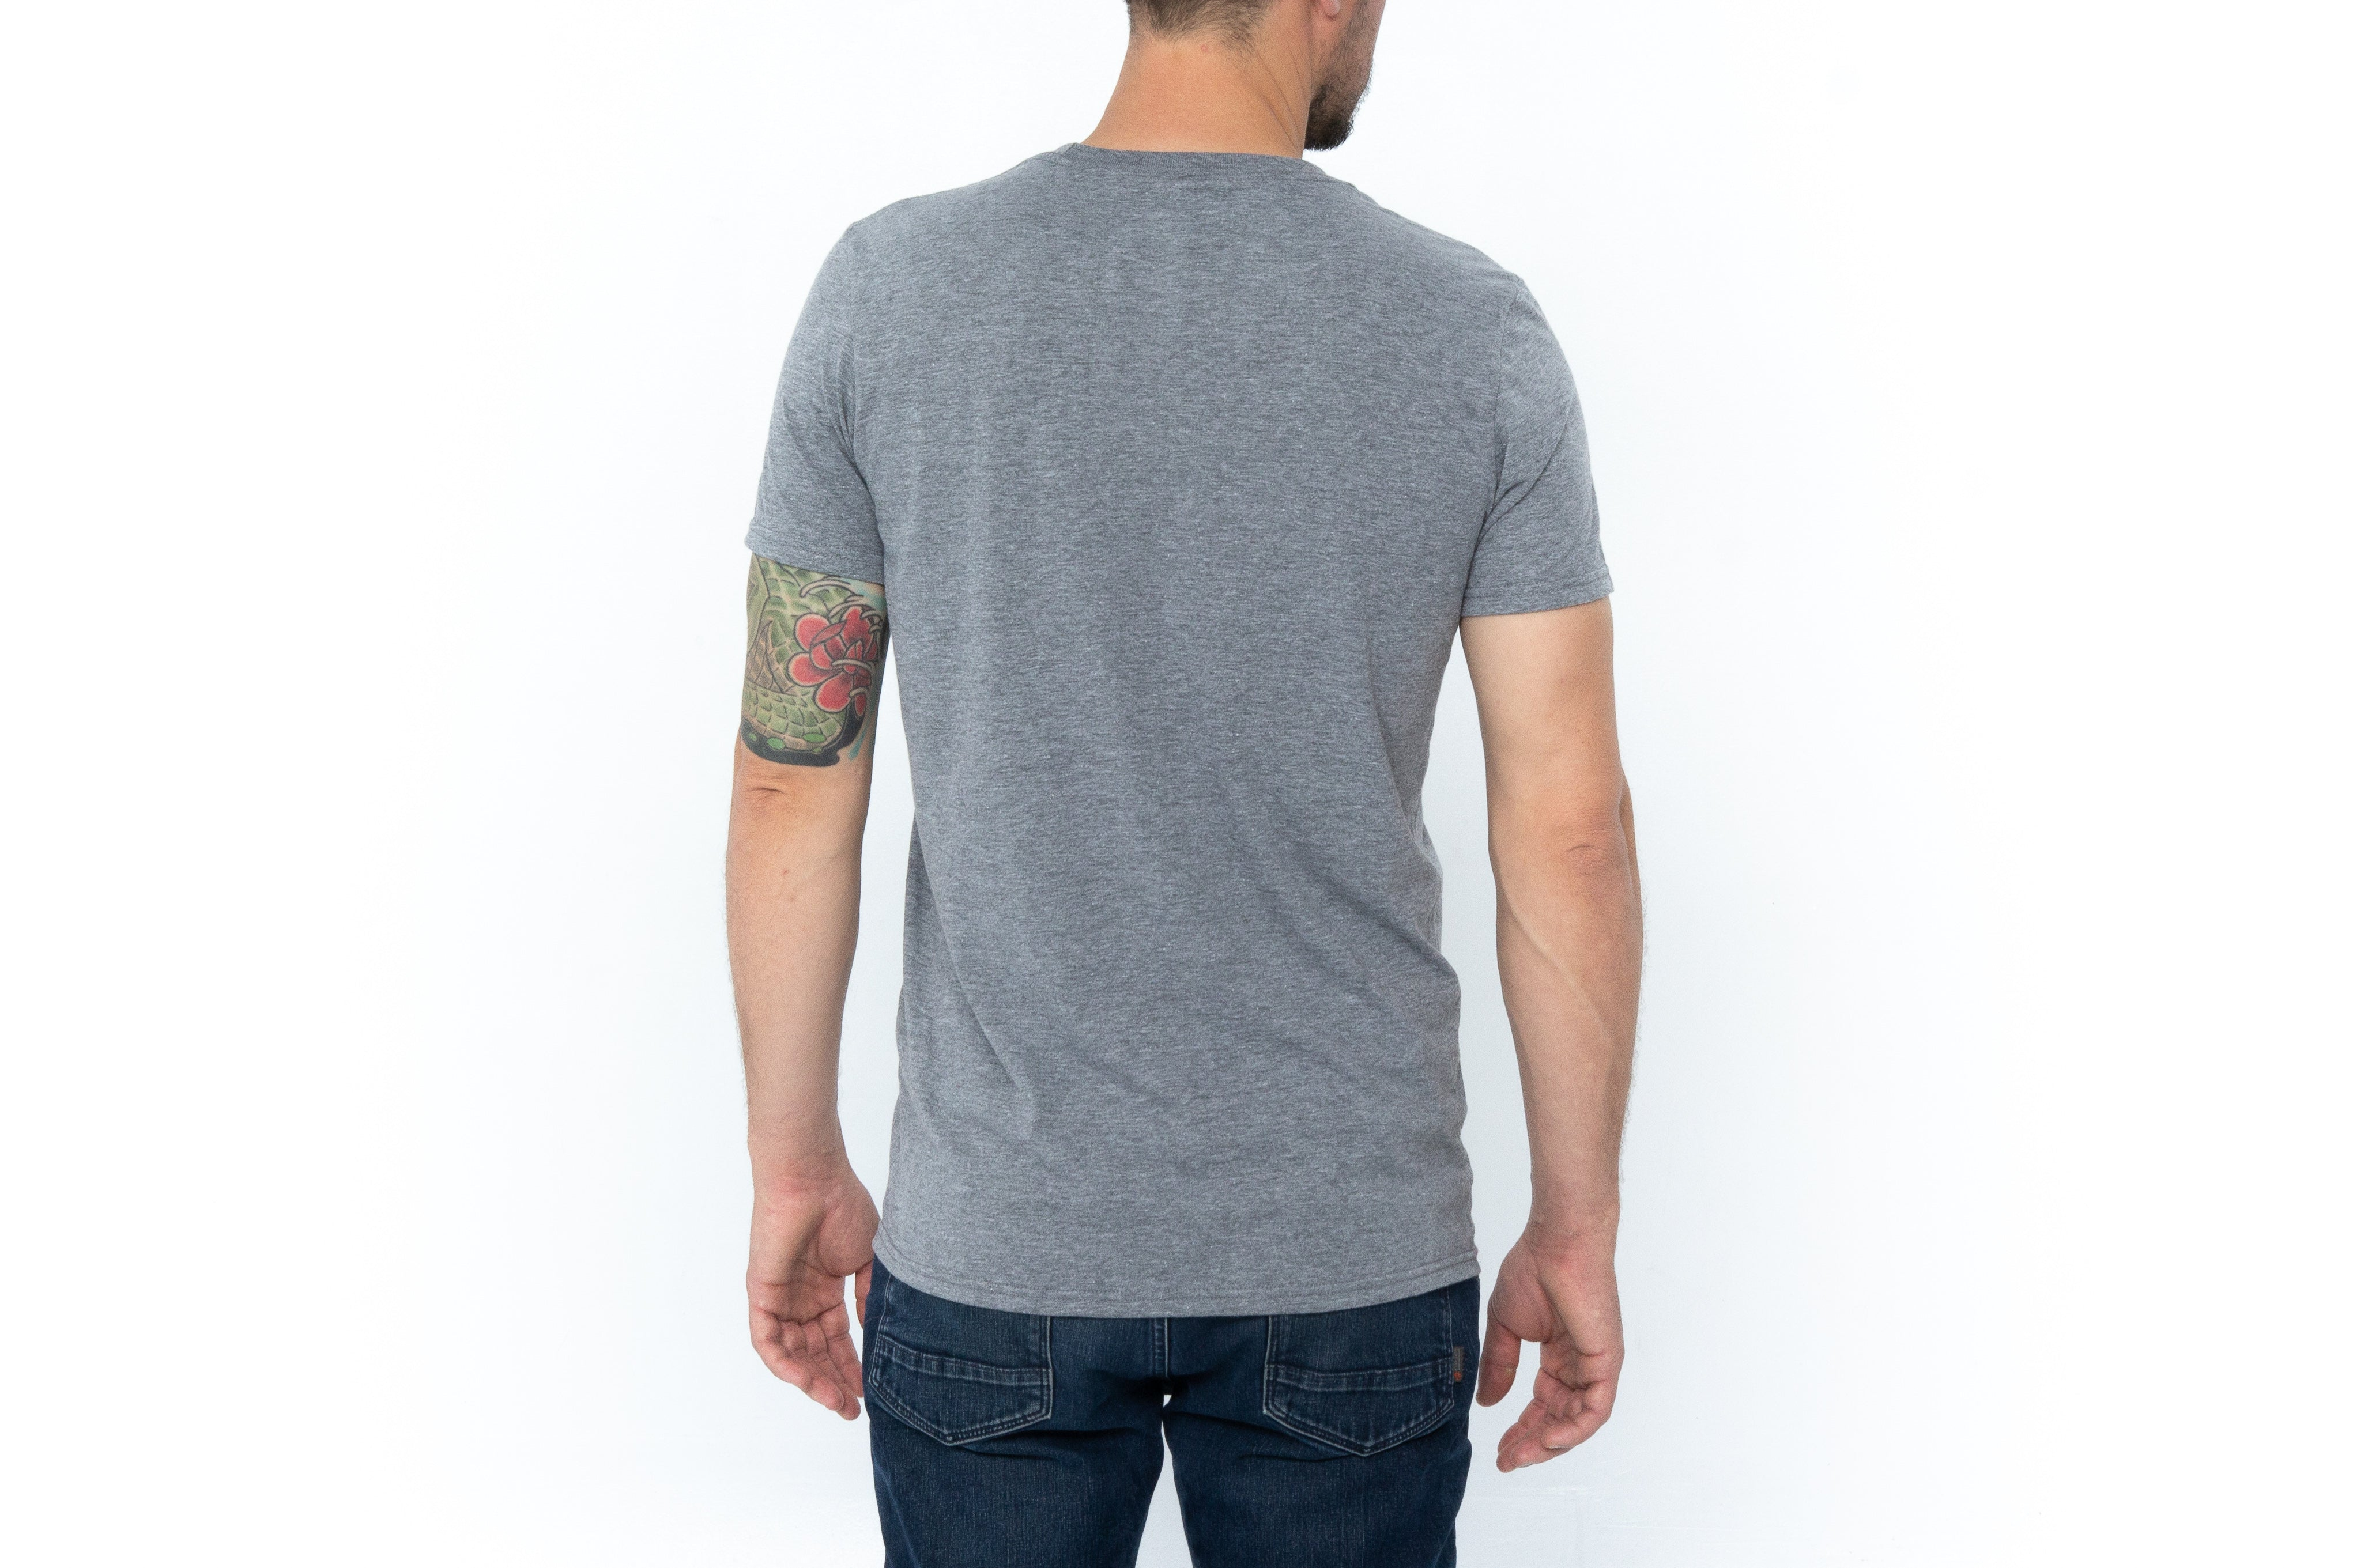 Light Grey Vanlife Tee - By Nomad Design